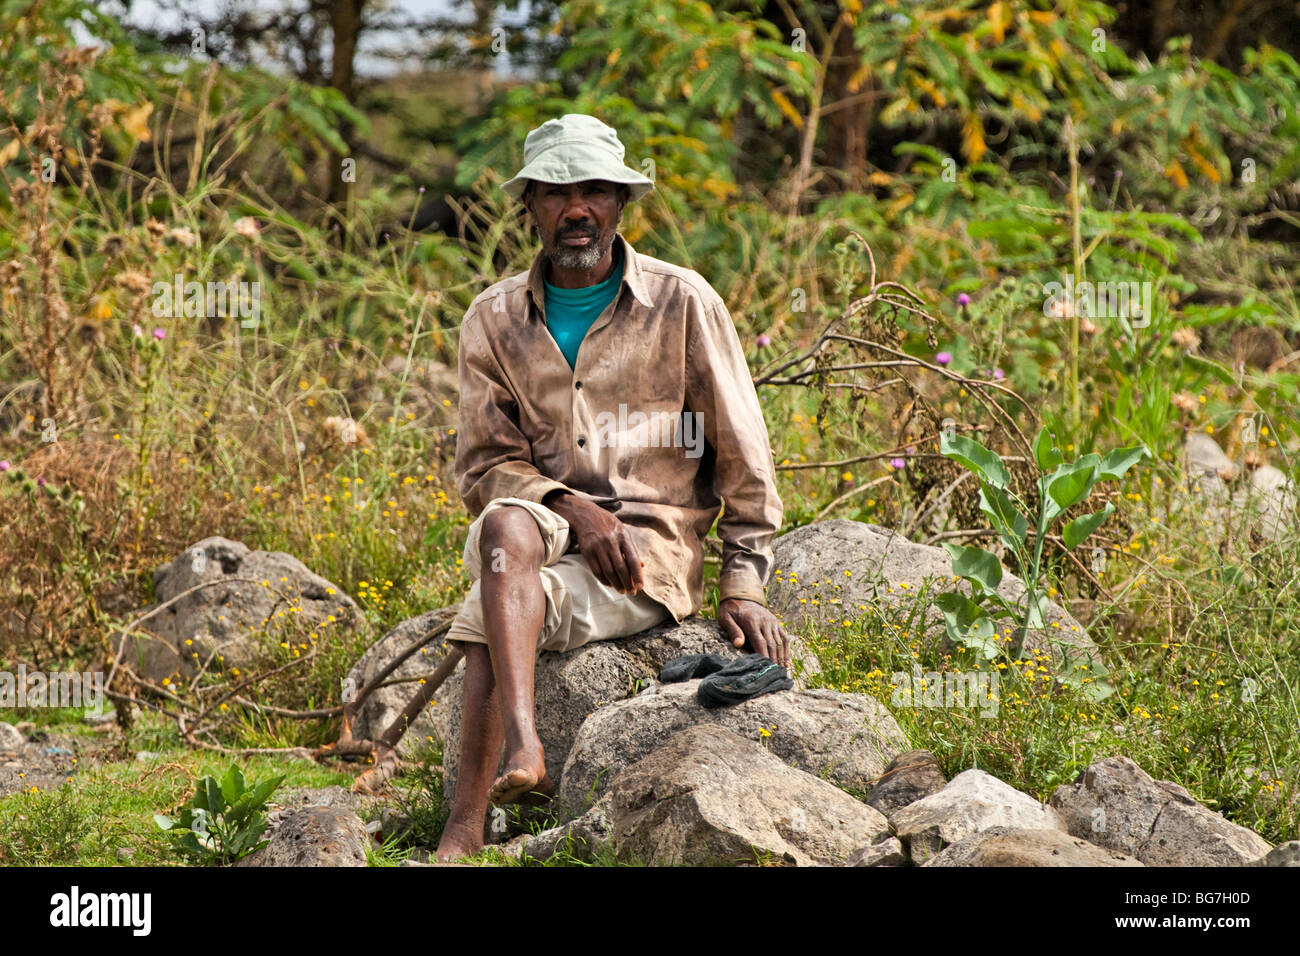 Sitting safari walk guide in Africa - Stock Image